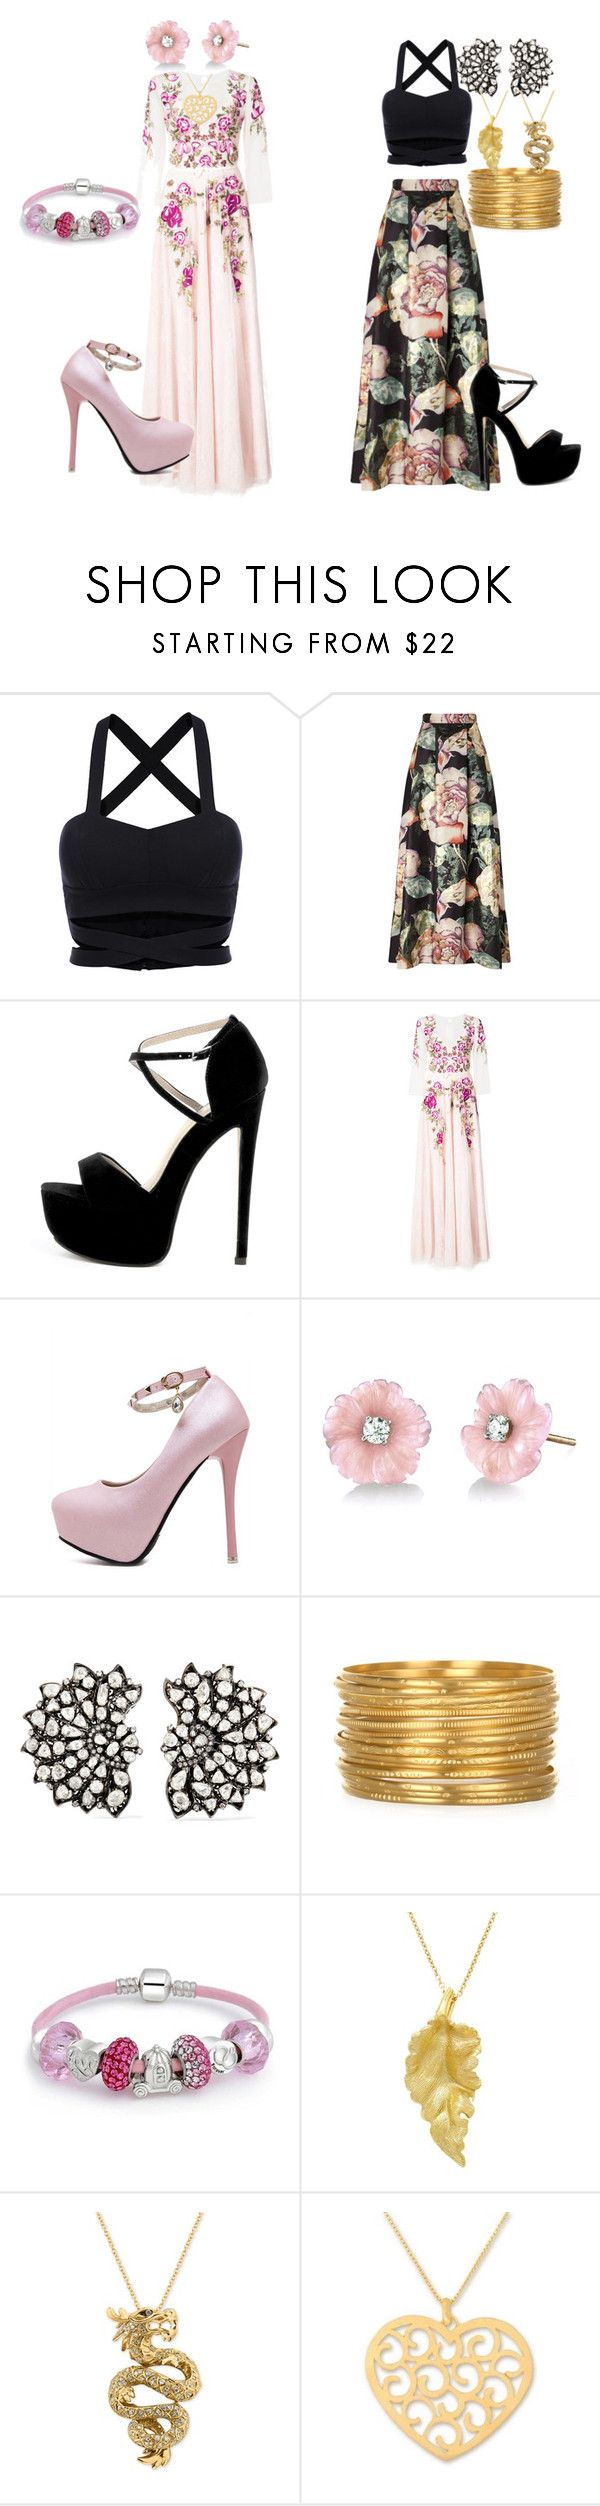 """""""spring-break party"""" by vanessa-dias-charles on Polyvore featuring Miss Selfridge, Notte by Marchesa, Irene Neuwirth, Amrapali, Bling Jewelry, London Road, Effy Jewelry and NOVICA"""